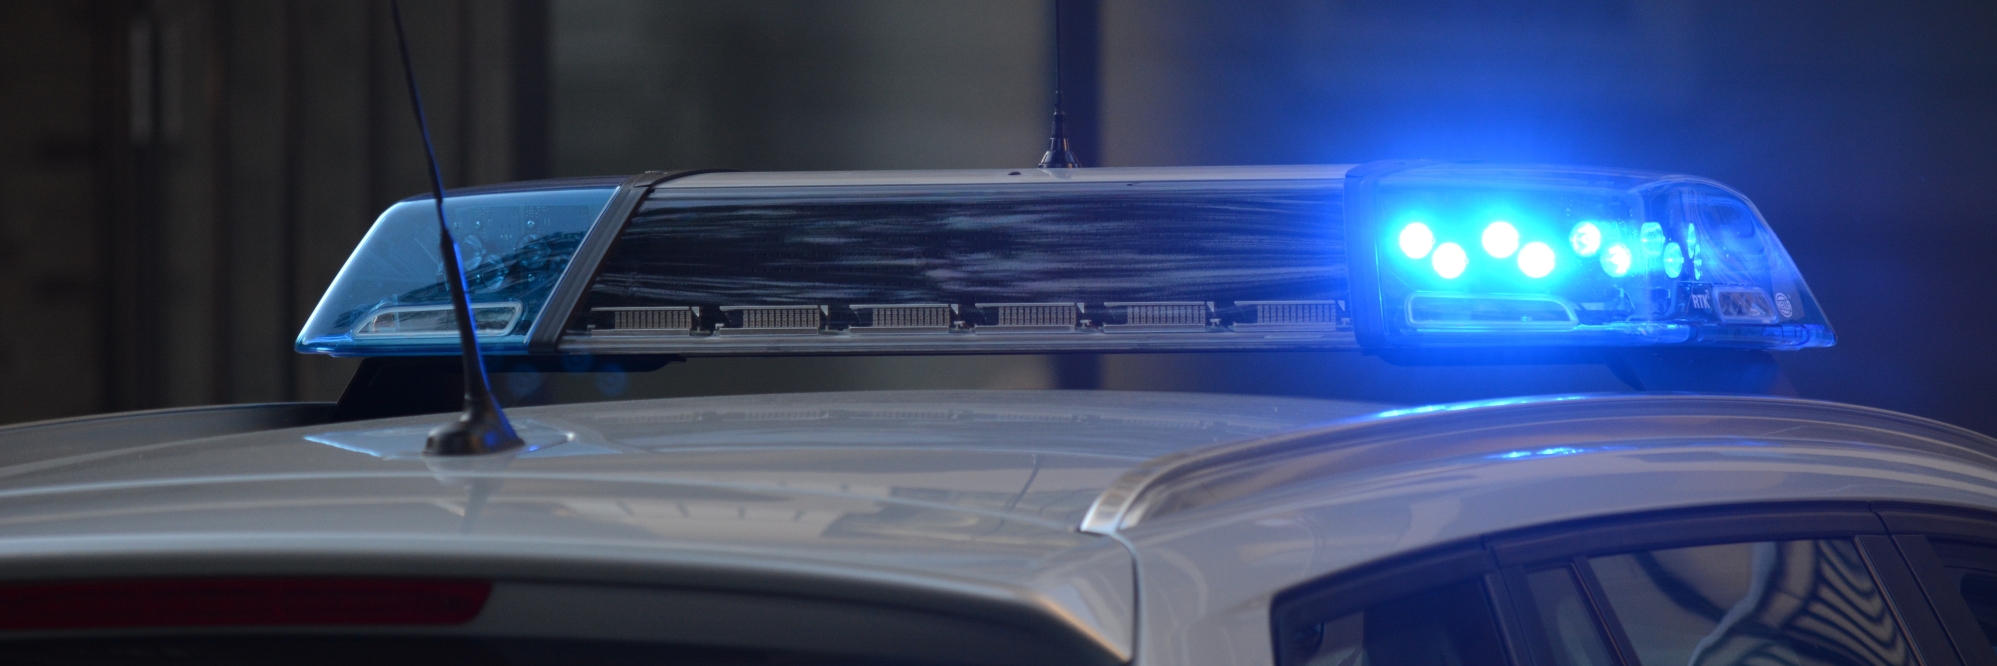 Police car with blue light on.